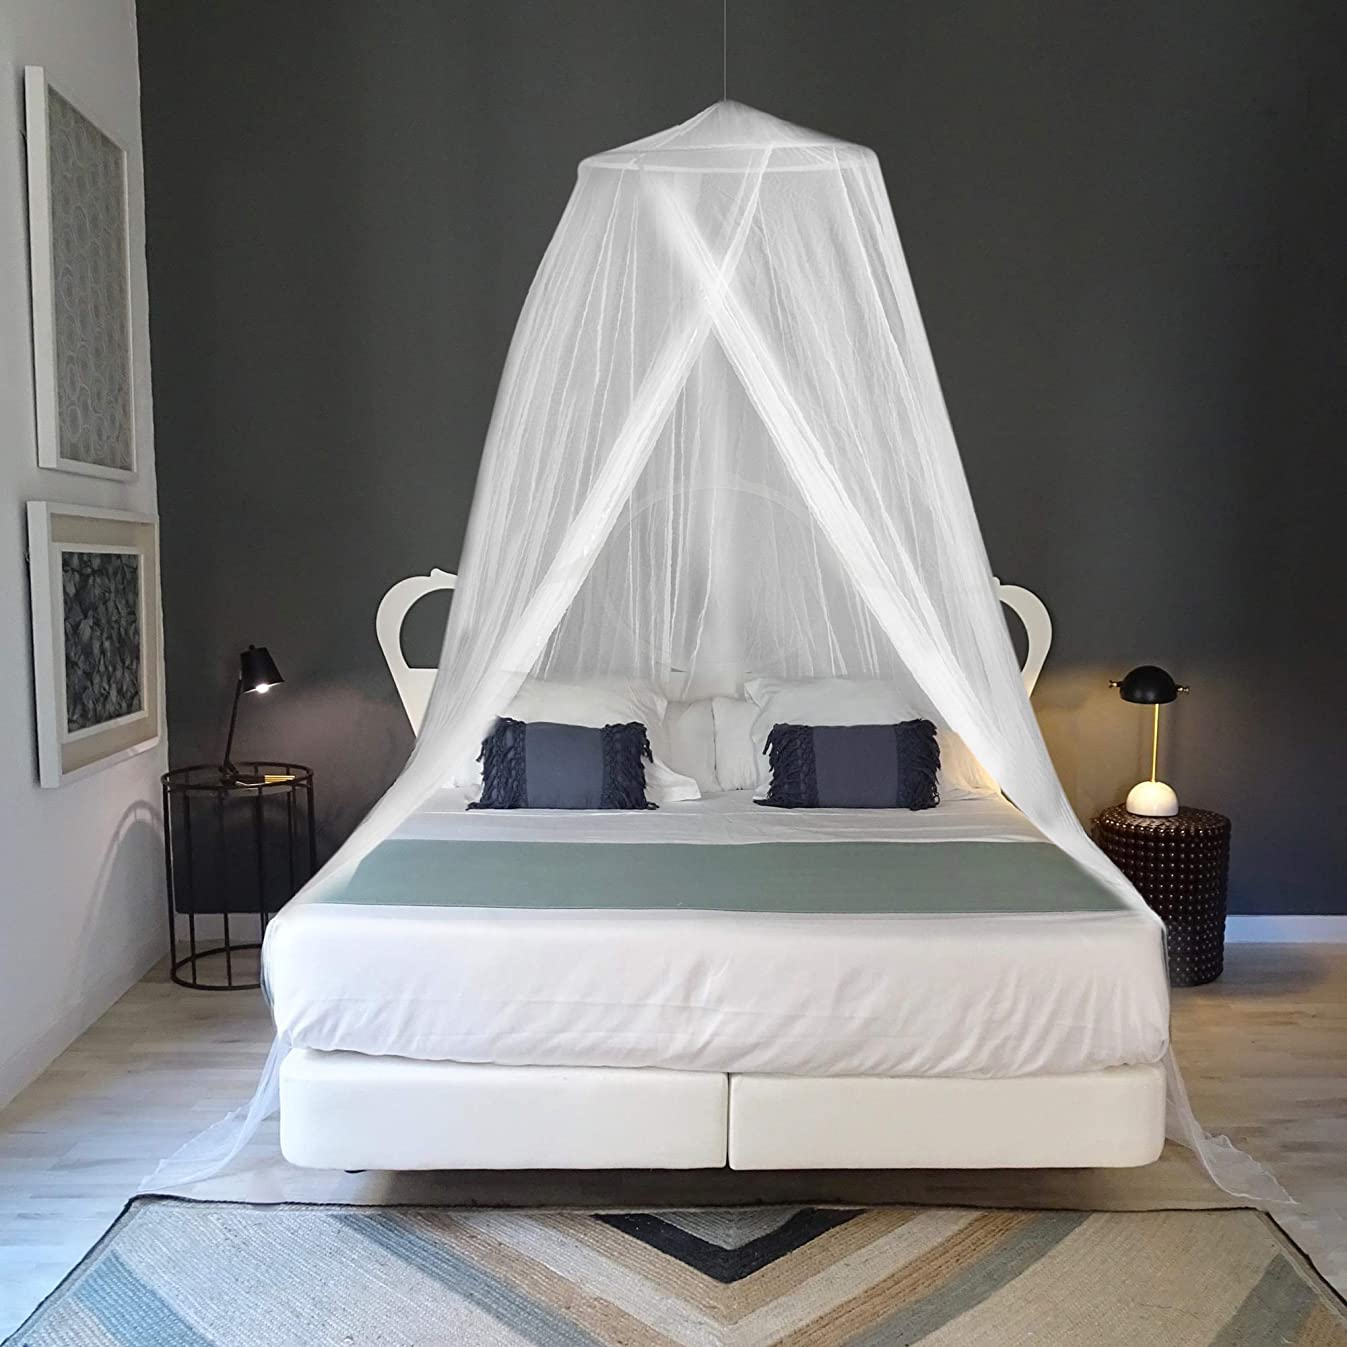 EVEN NATURALS Luxury Mosquito Net for Bed, for Single to King Size, Quick and Easy Installation System, Unique Internal Loop, 2 Entries, Strong Carry Bag, No Chemicals Added